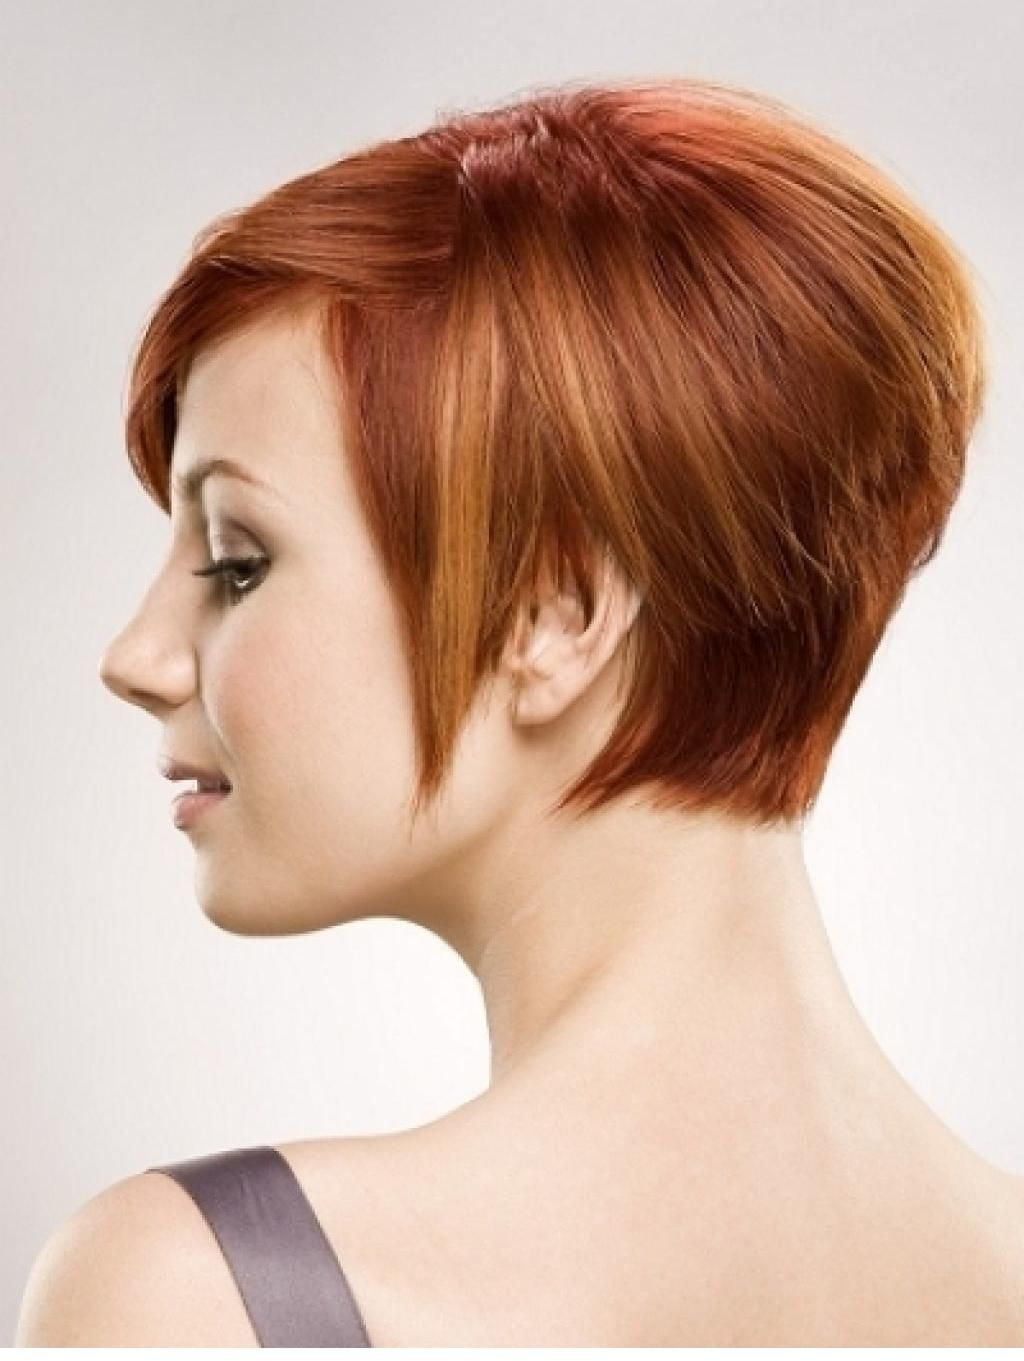 50 Kisa Bayan Sac Modelleri Red Hair With Blonde Highlights